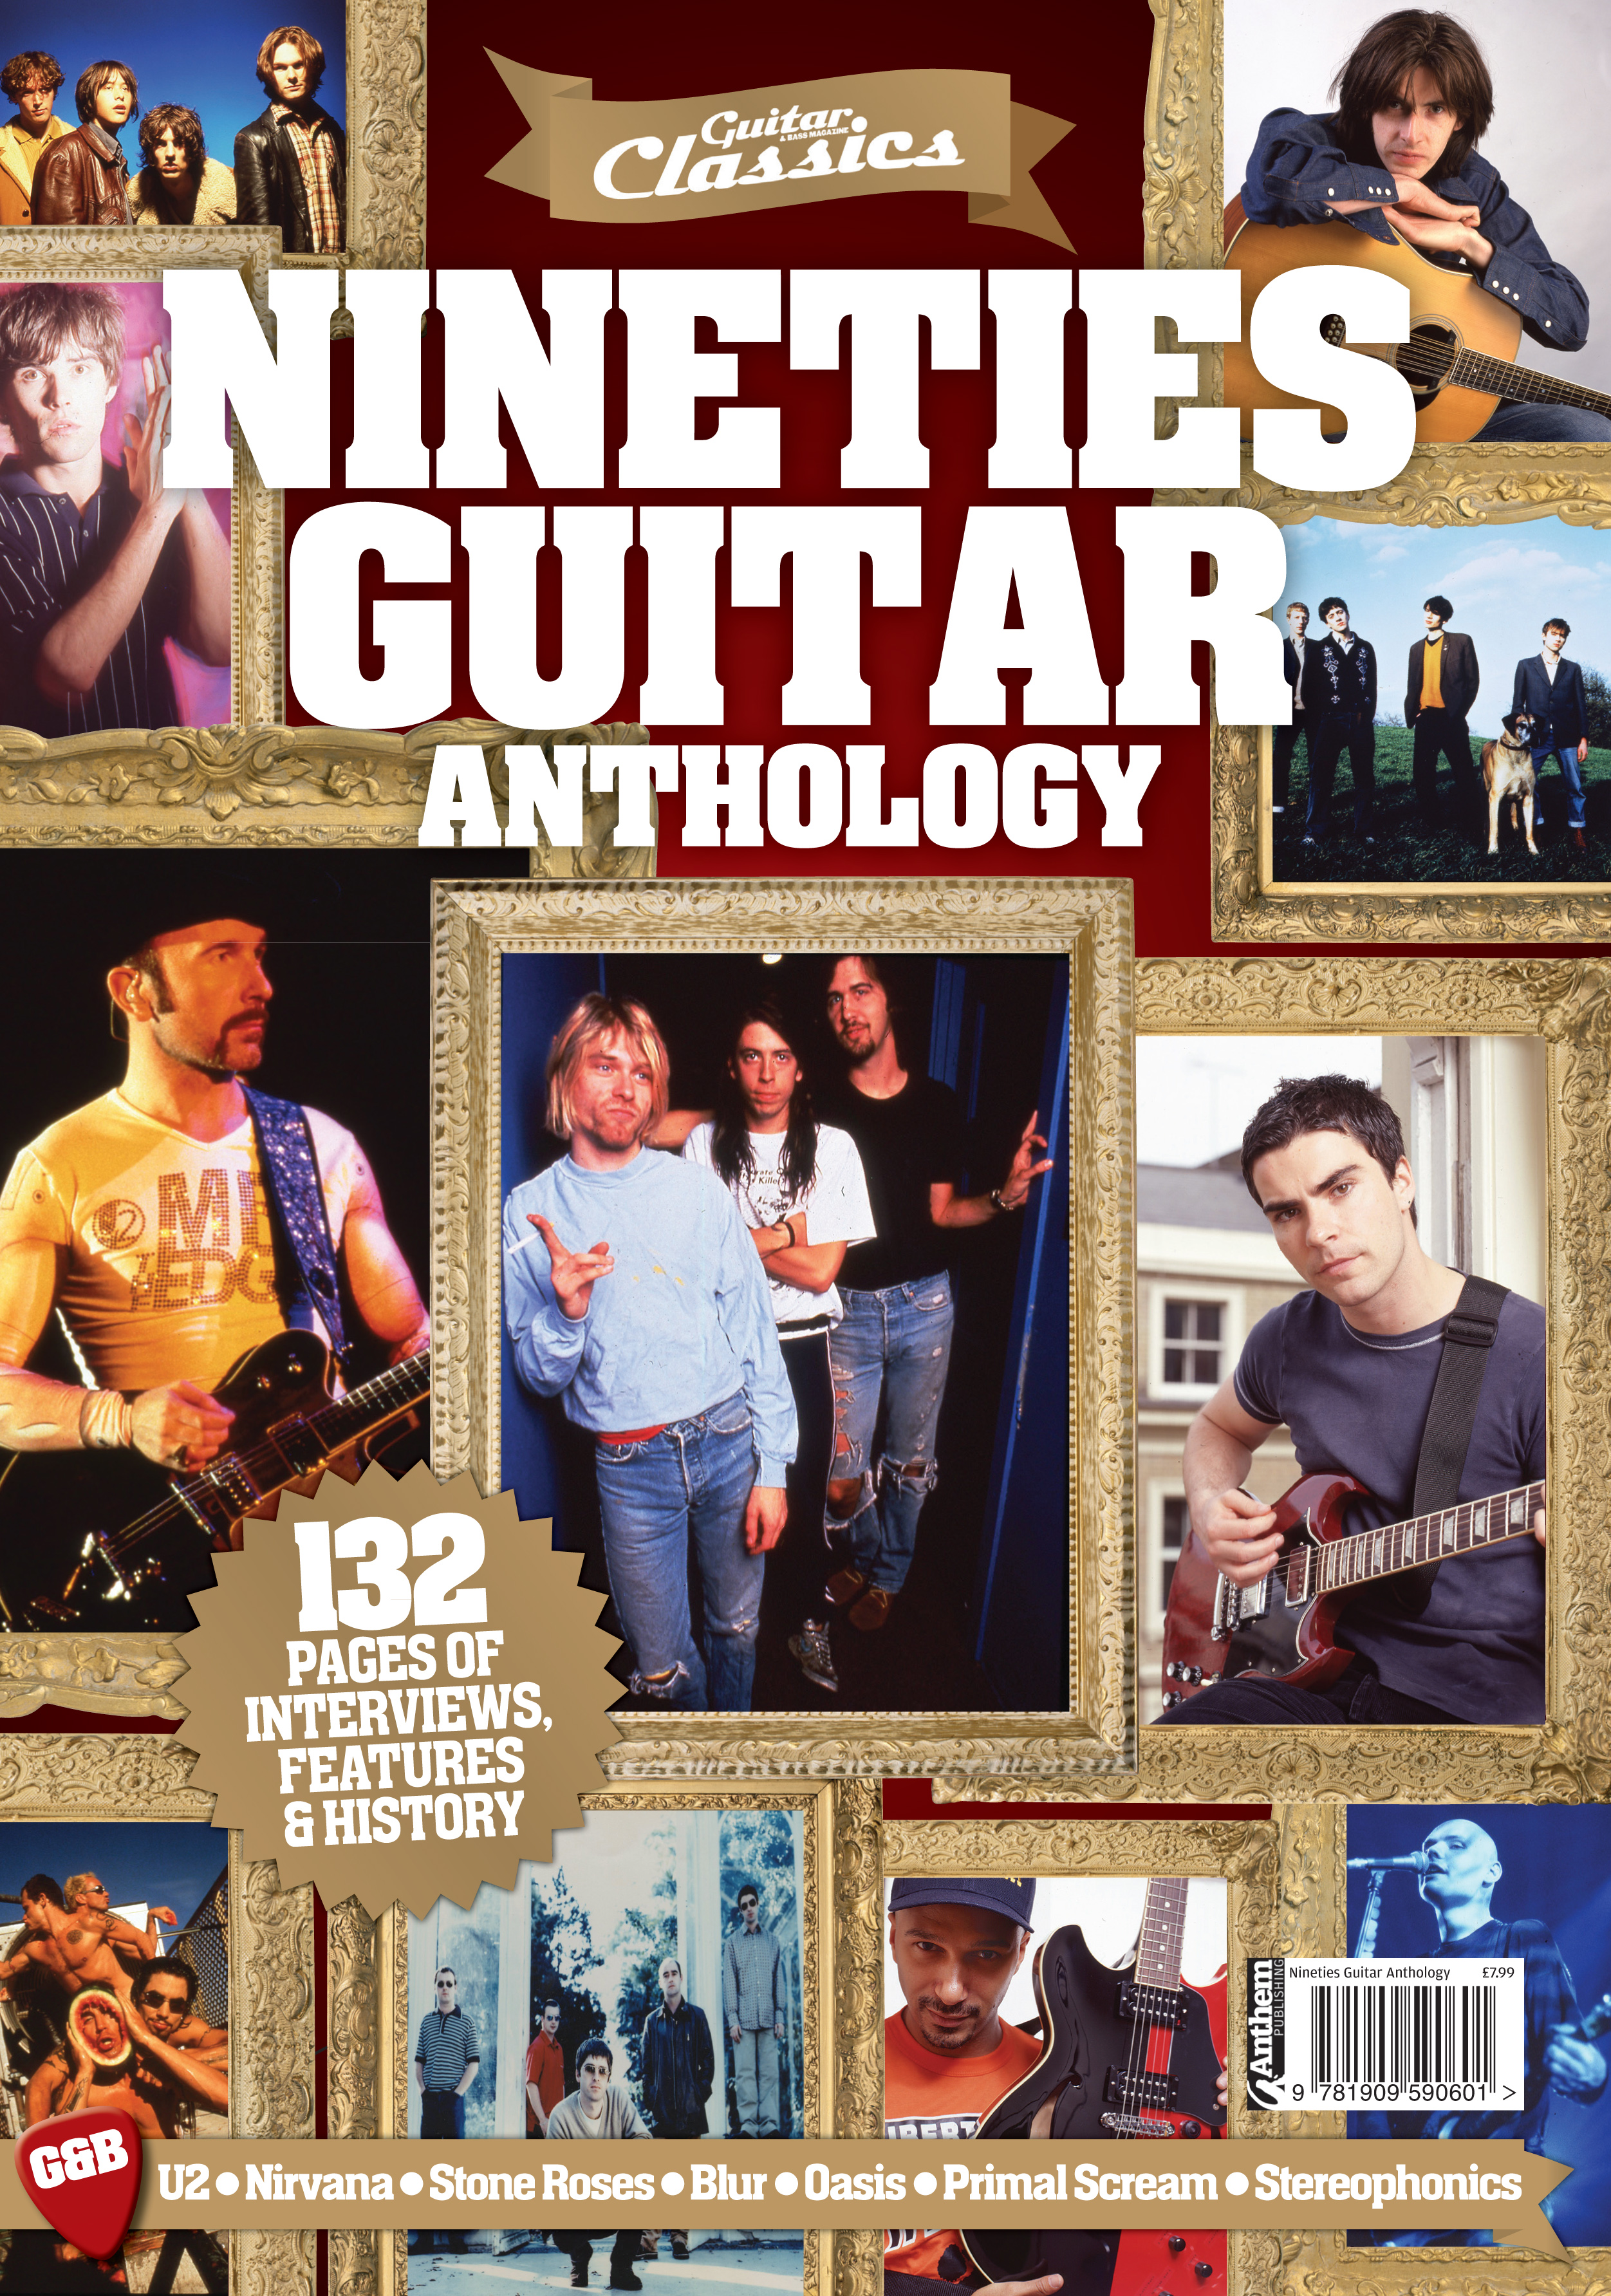 Guitar & Bass Classic Nineties Guitar Anthology Out Now!